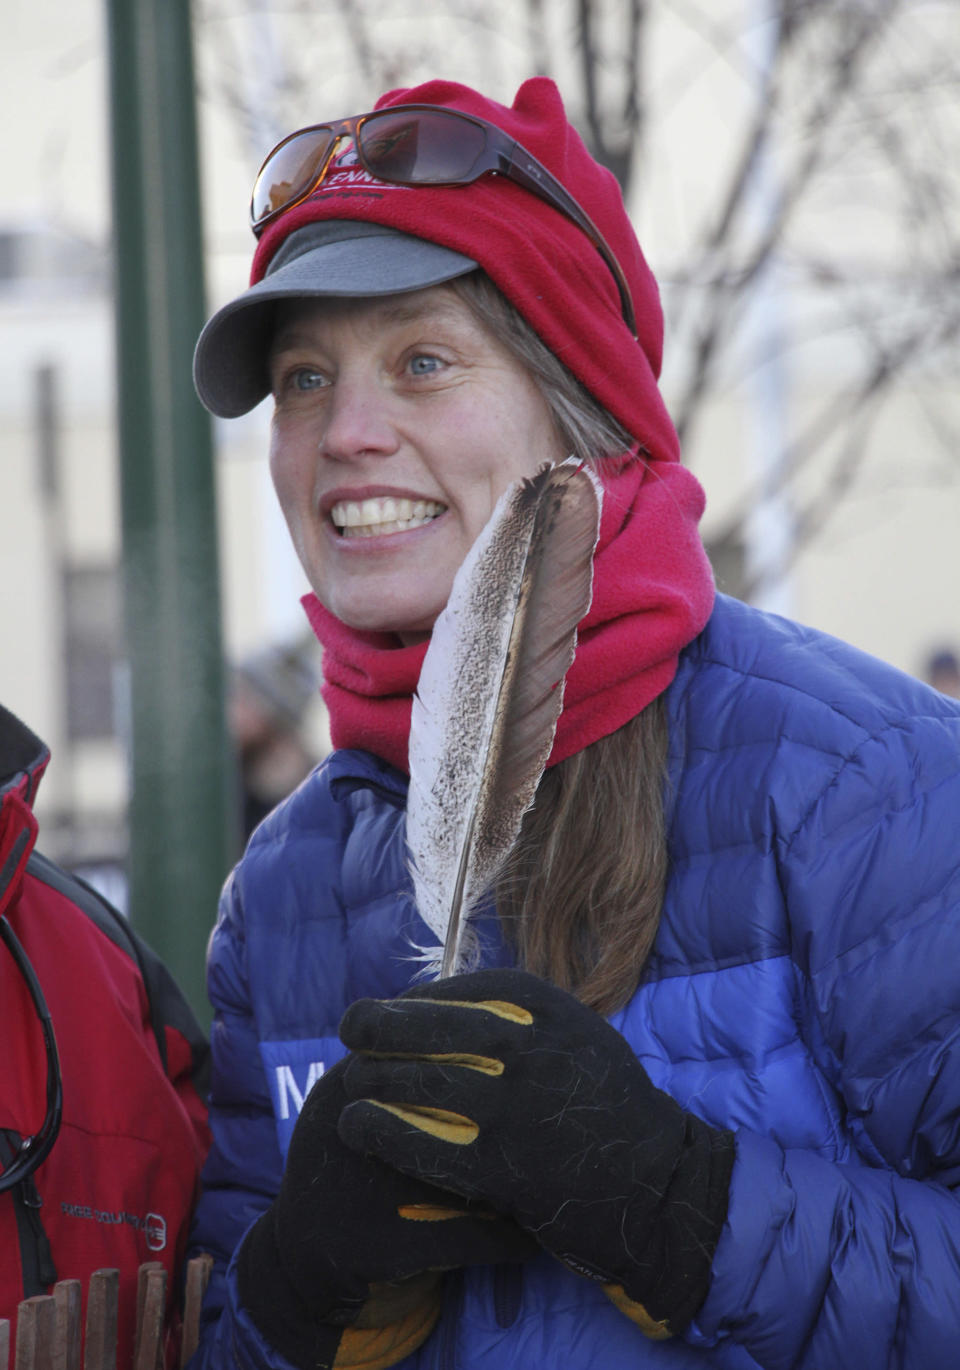 In this Saturday, March 2, 2019, photo, musher Aliy Zirkle, holds a feather given to her as a gift by a fan at the ceremonial start of the Iditarod Trail Sled Dog Race in Anchorage, Alaska. Zirkle was leading the race early Thursday, March 7, 2019, and was the first musher to reach the halfway point of the race when she pulled into the checkpoint in the ghost town of Iditarod, Alaska. (AP Photo/Mark Thiessen)